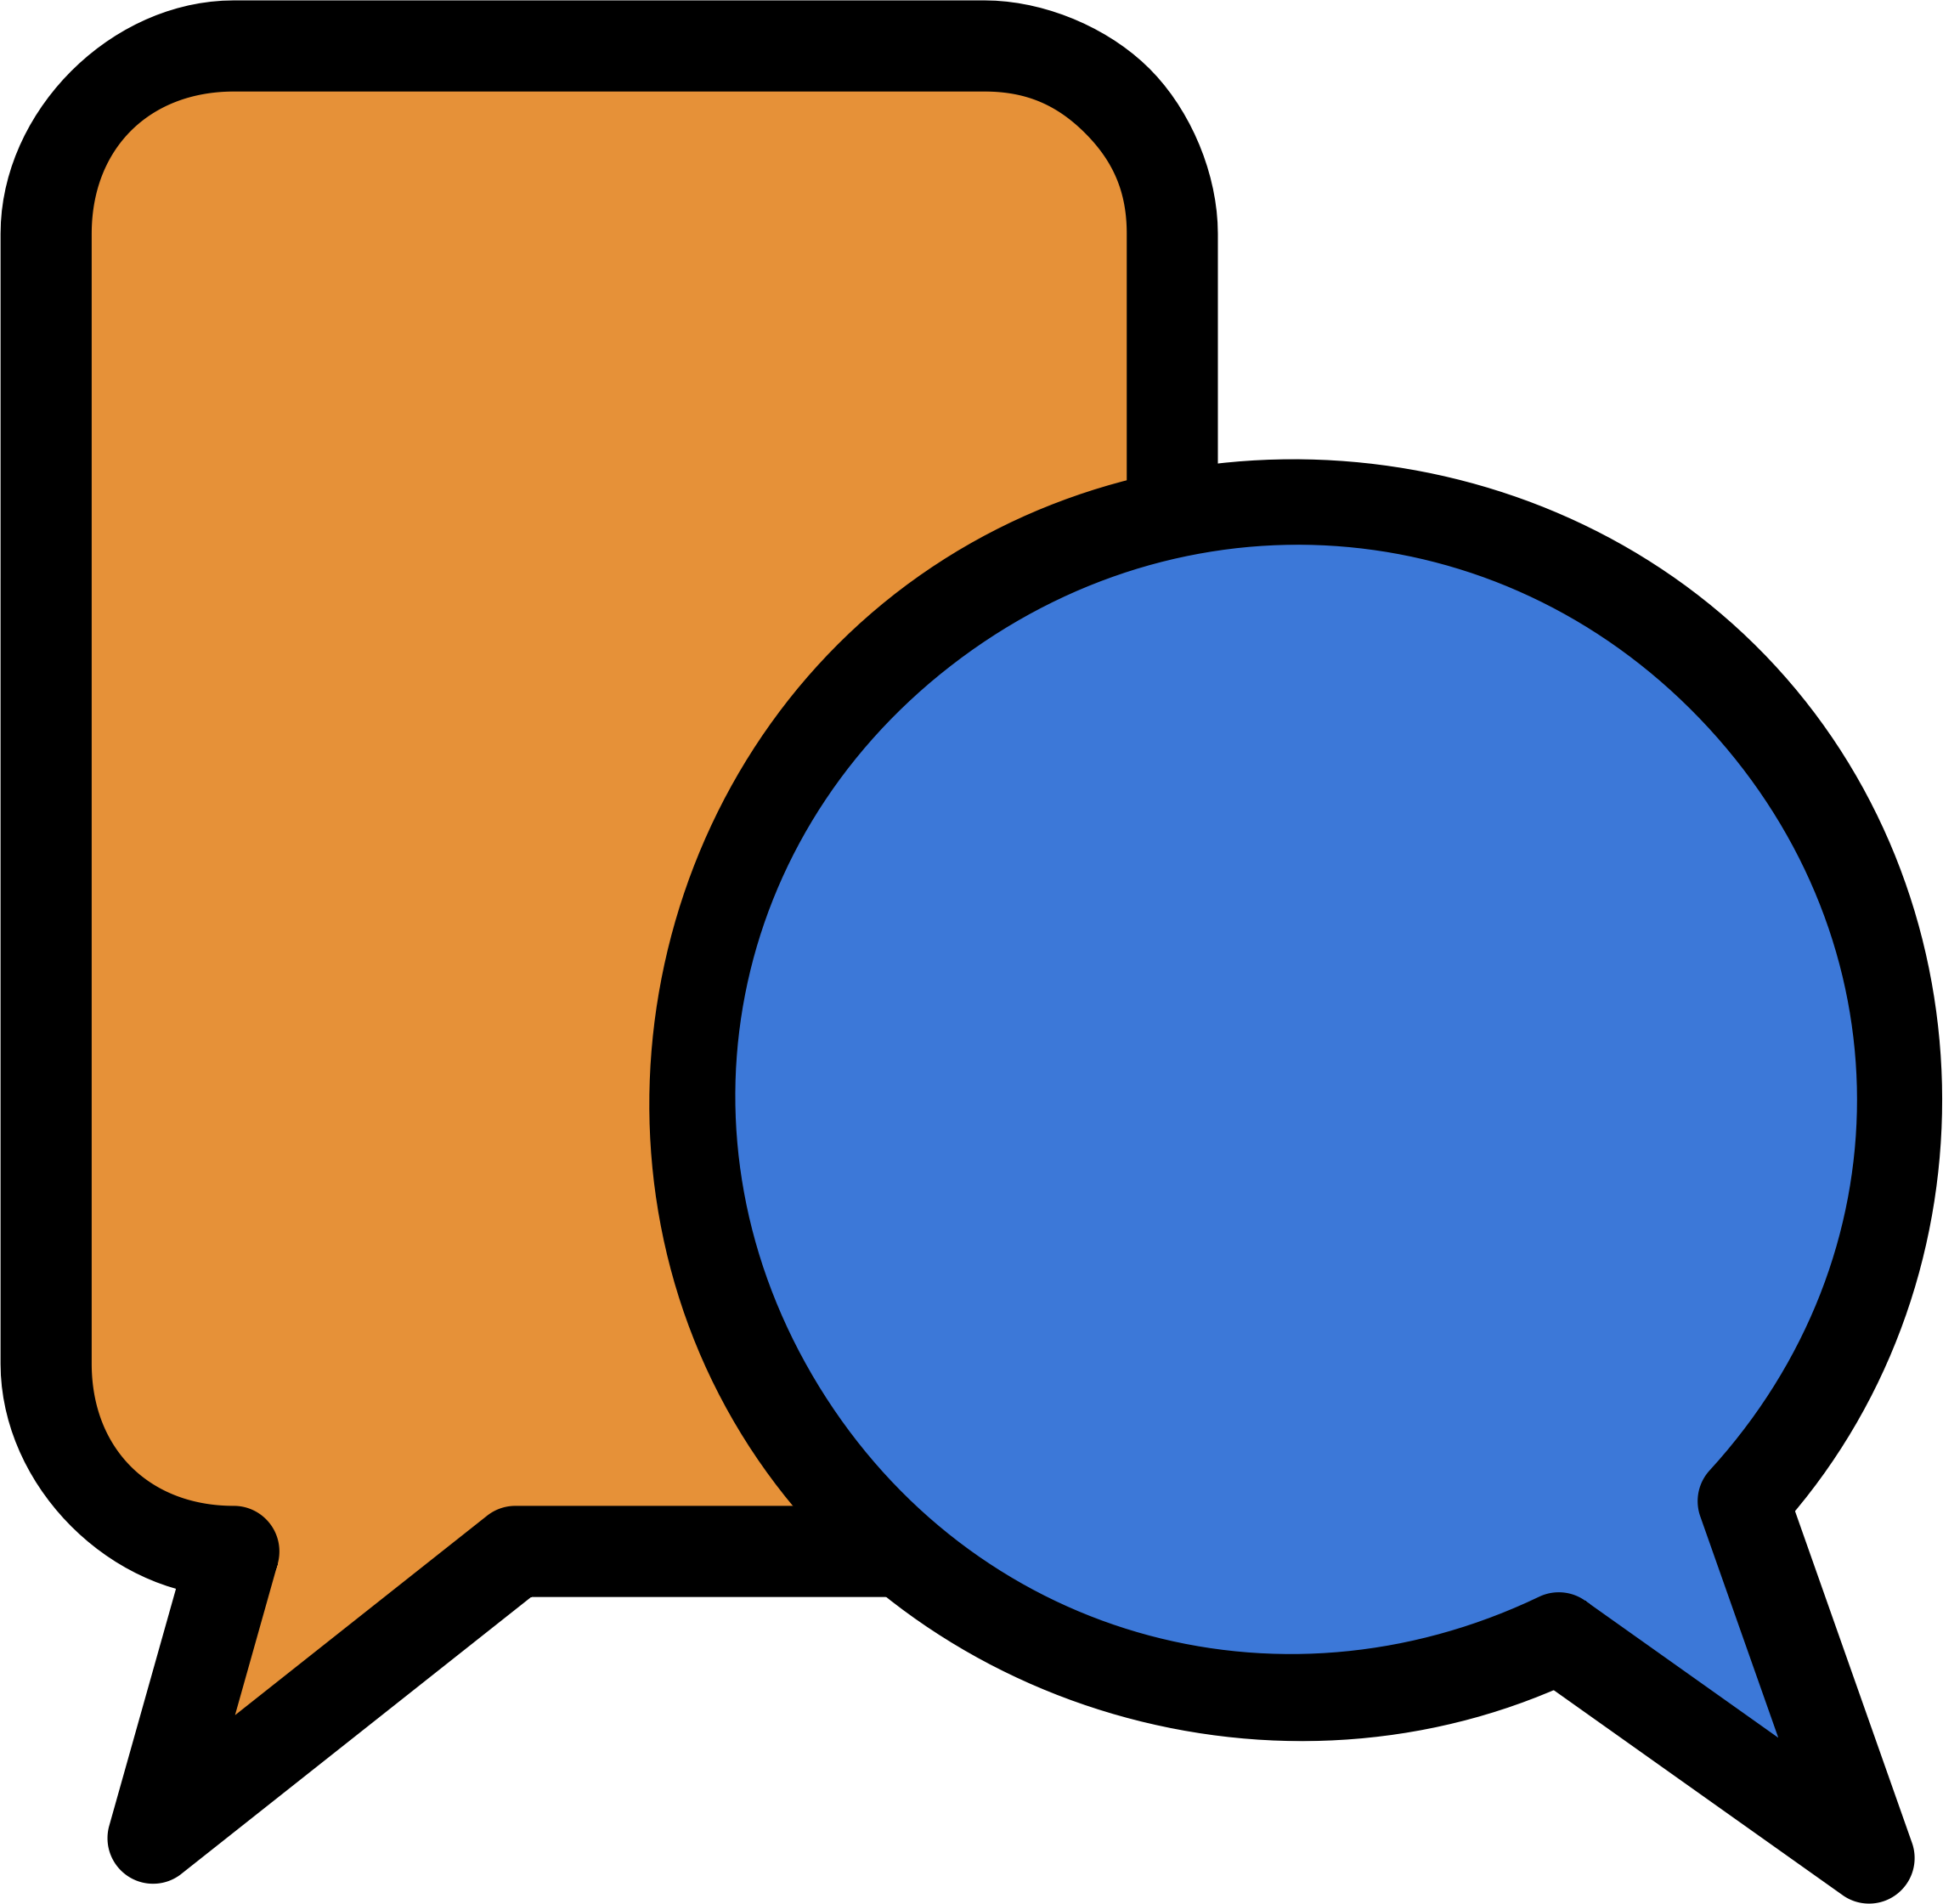 Moodle icon big image. Discussion clipart